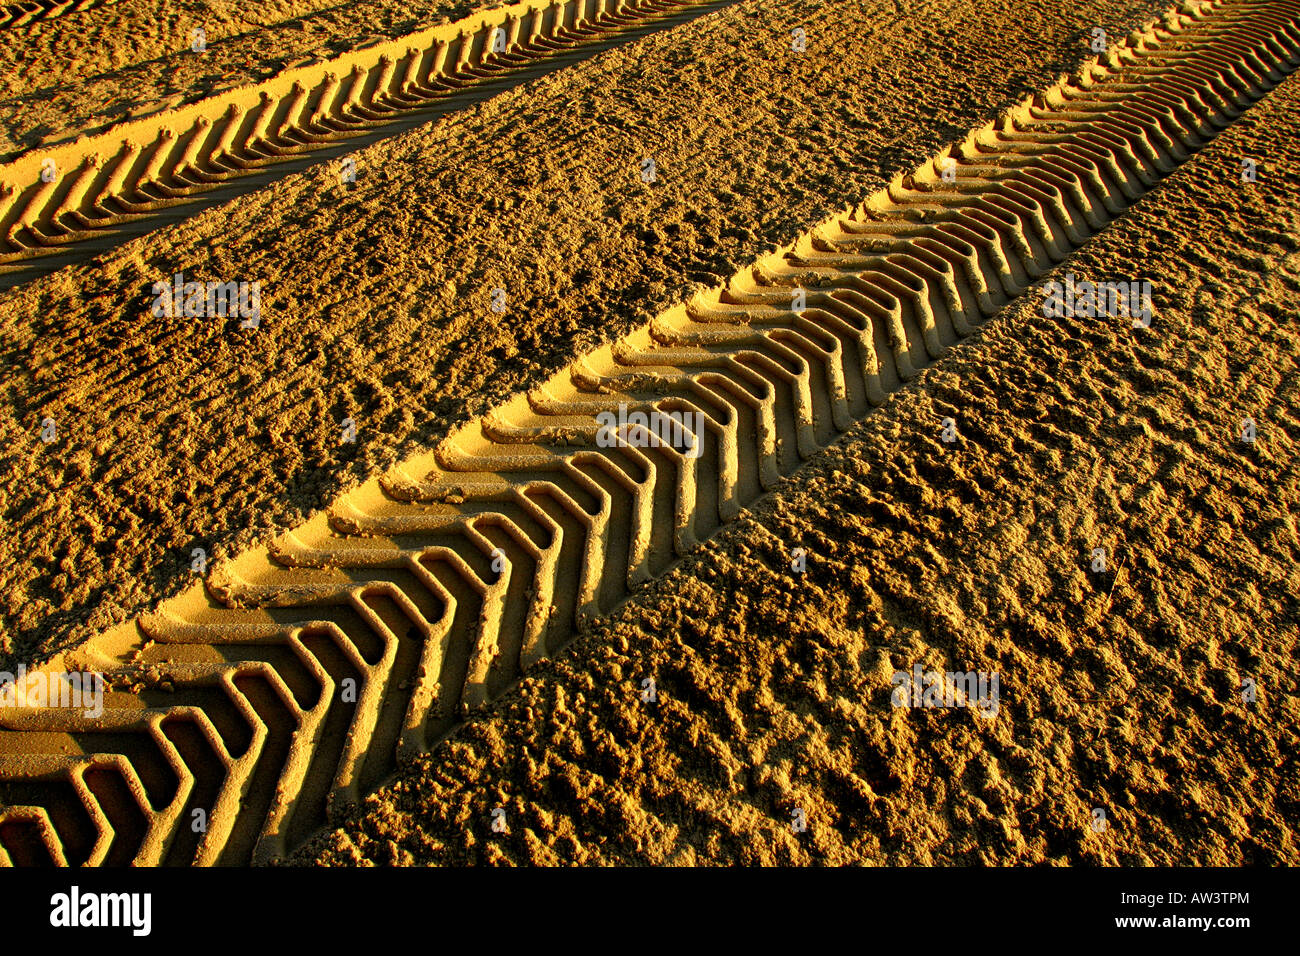 Tyre tracks in the sand - Stock Image